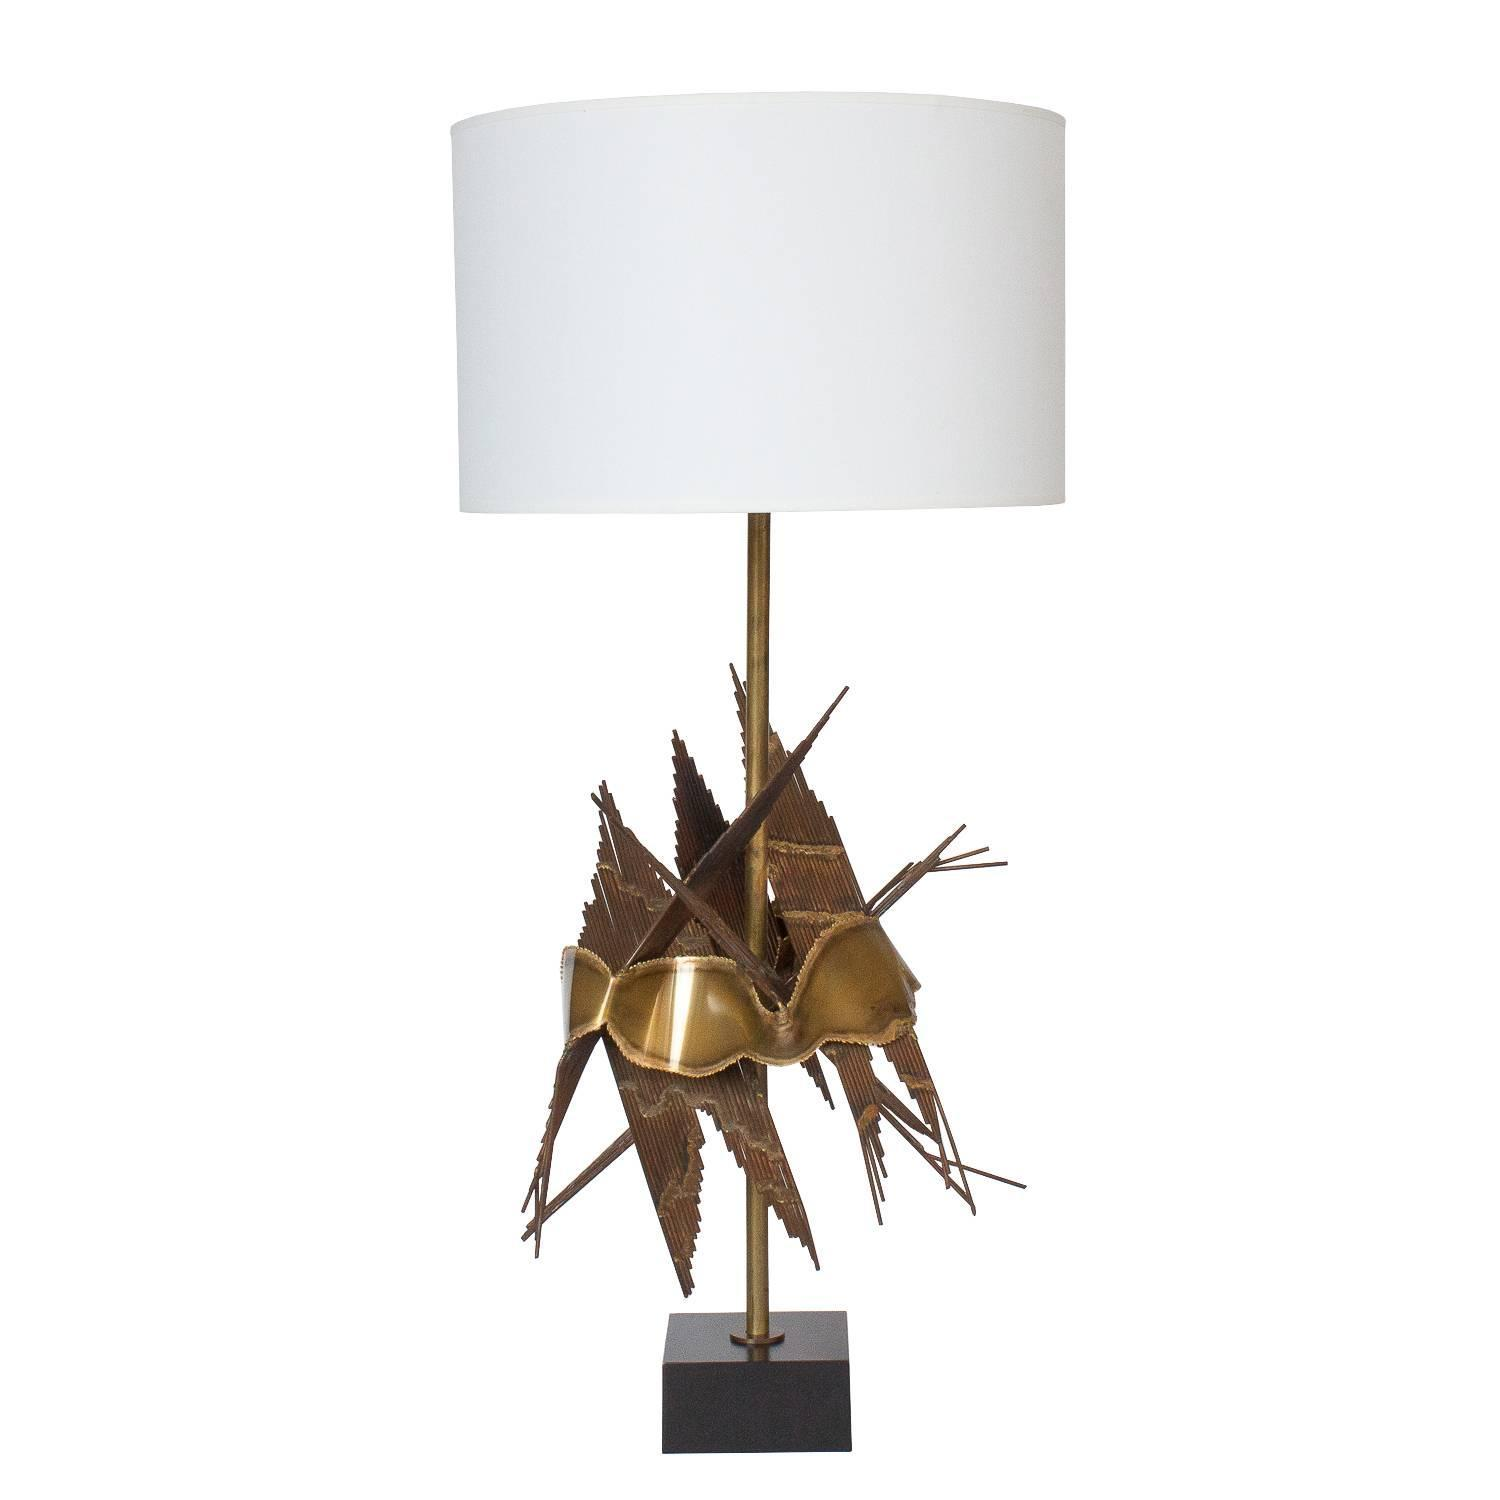 sc 1 st  1stDibs & Brutalist Metal Table Lamp by Tom Greene For Sale at 1stdibs azcodes.com